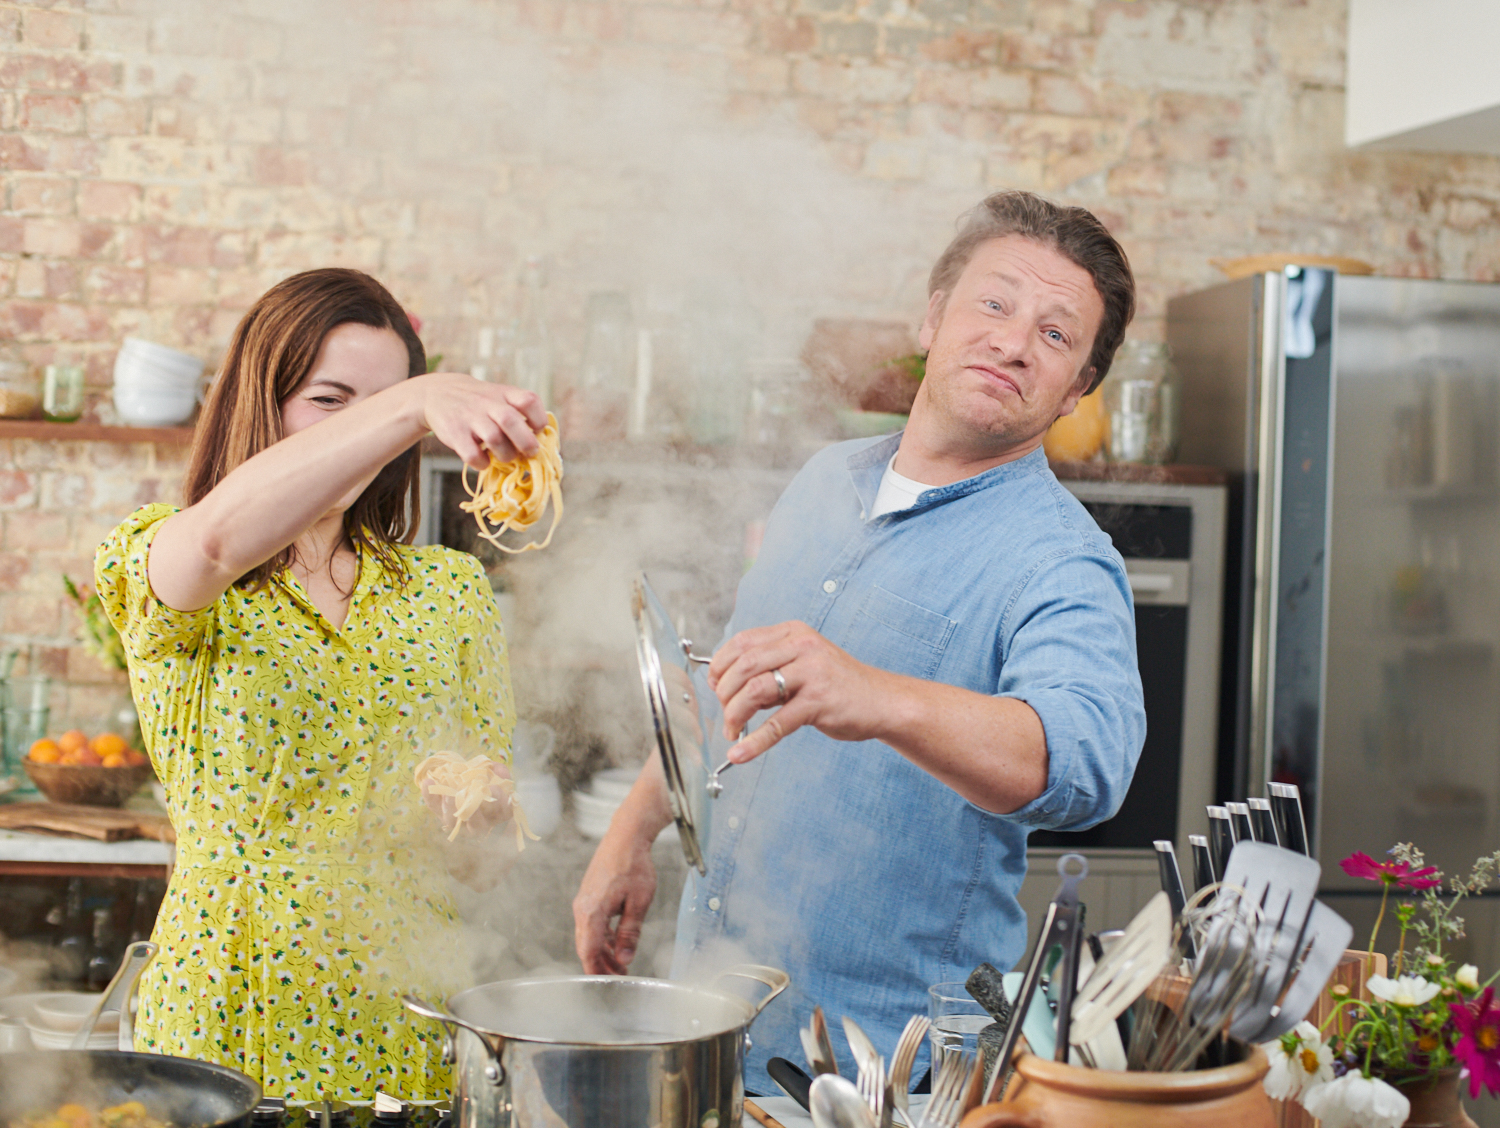 Jamie Oliver in his HQ in London, Showing Rosamund Dean some recepies.